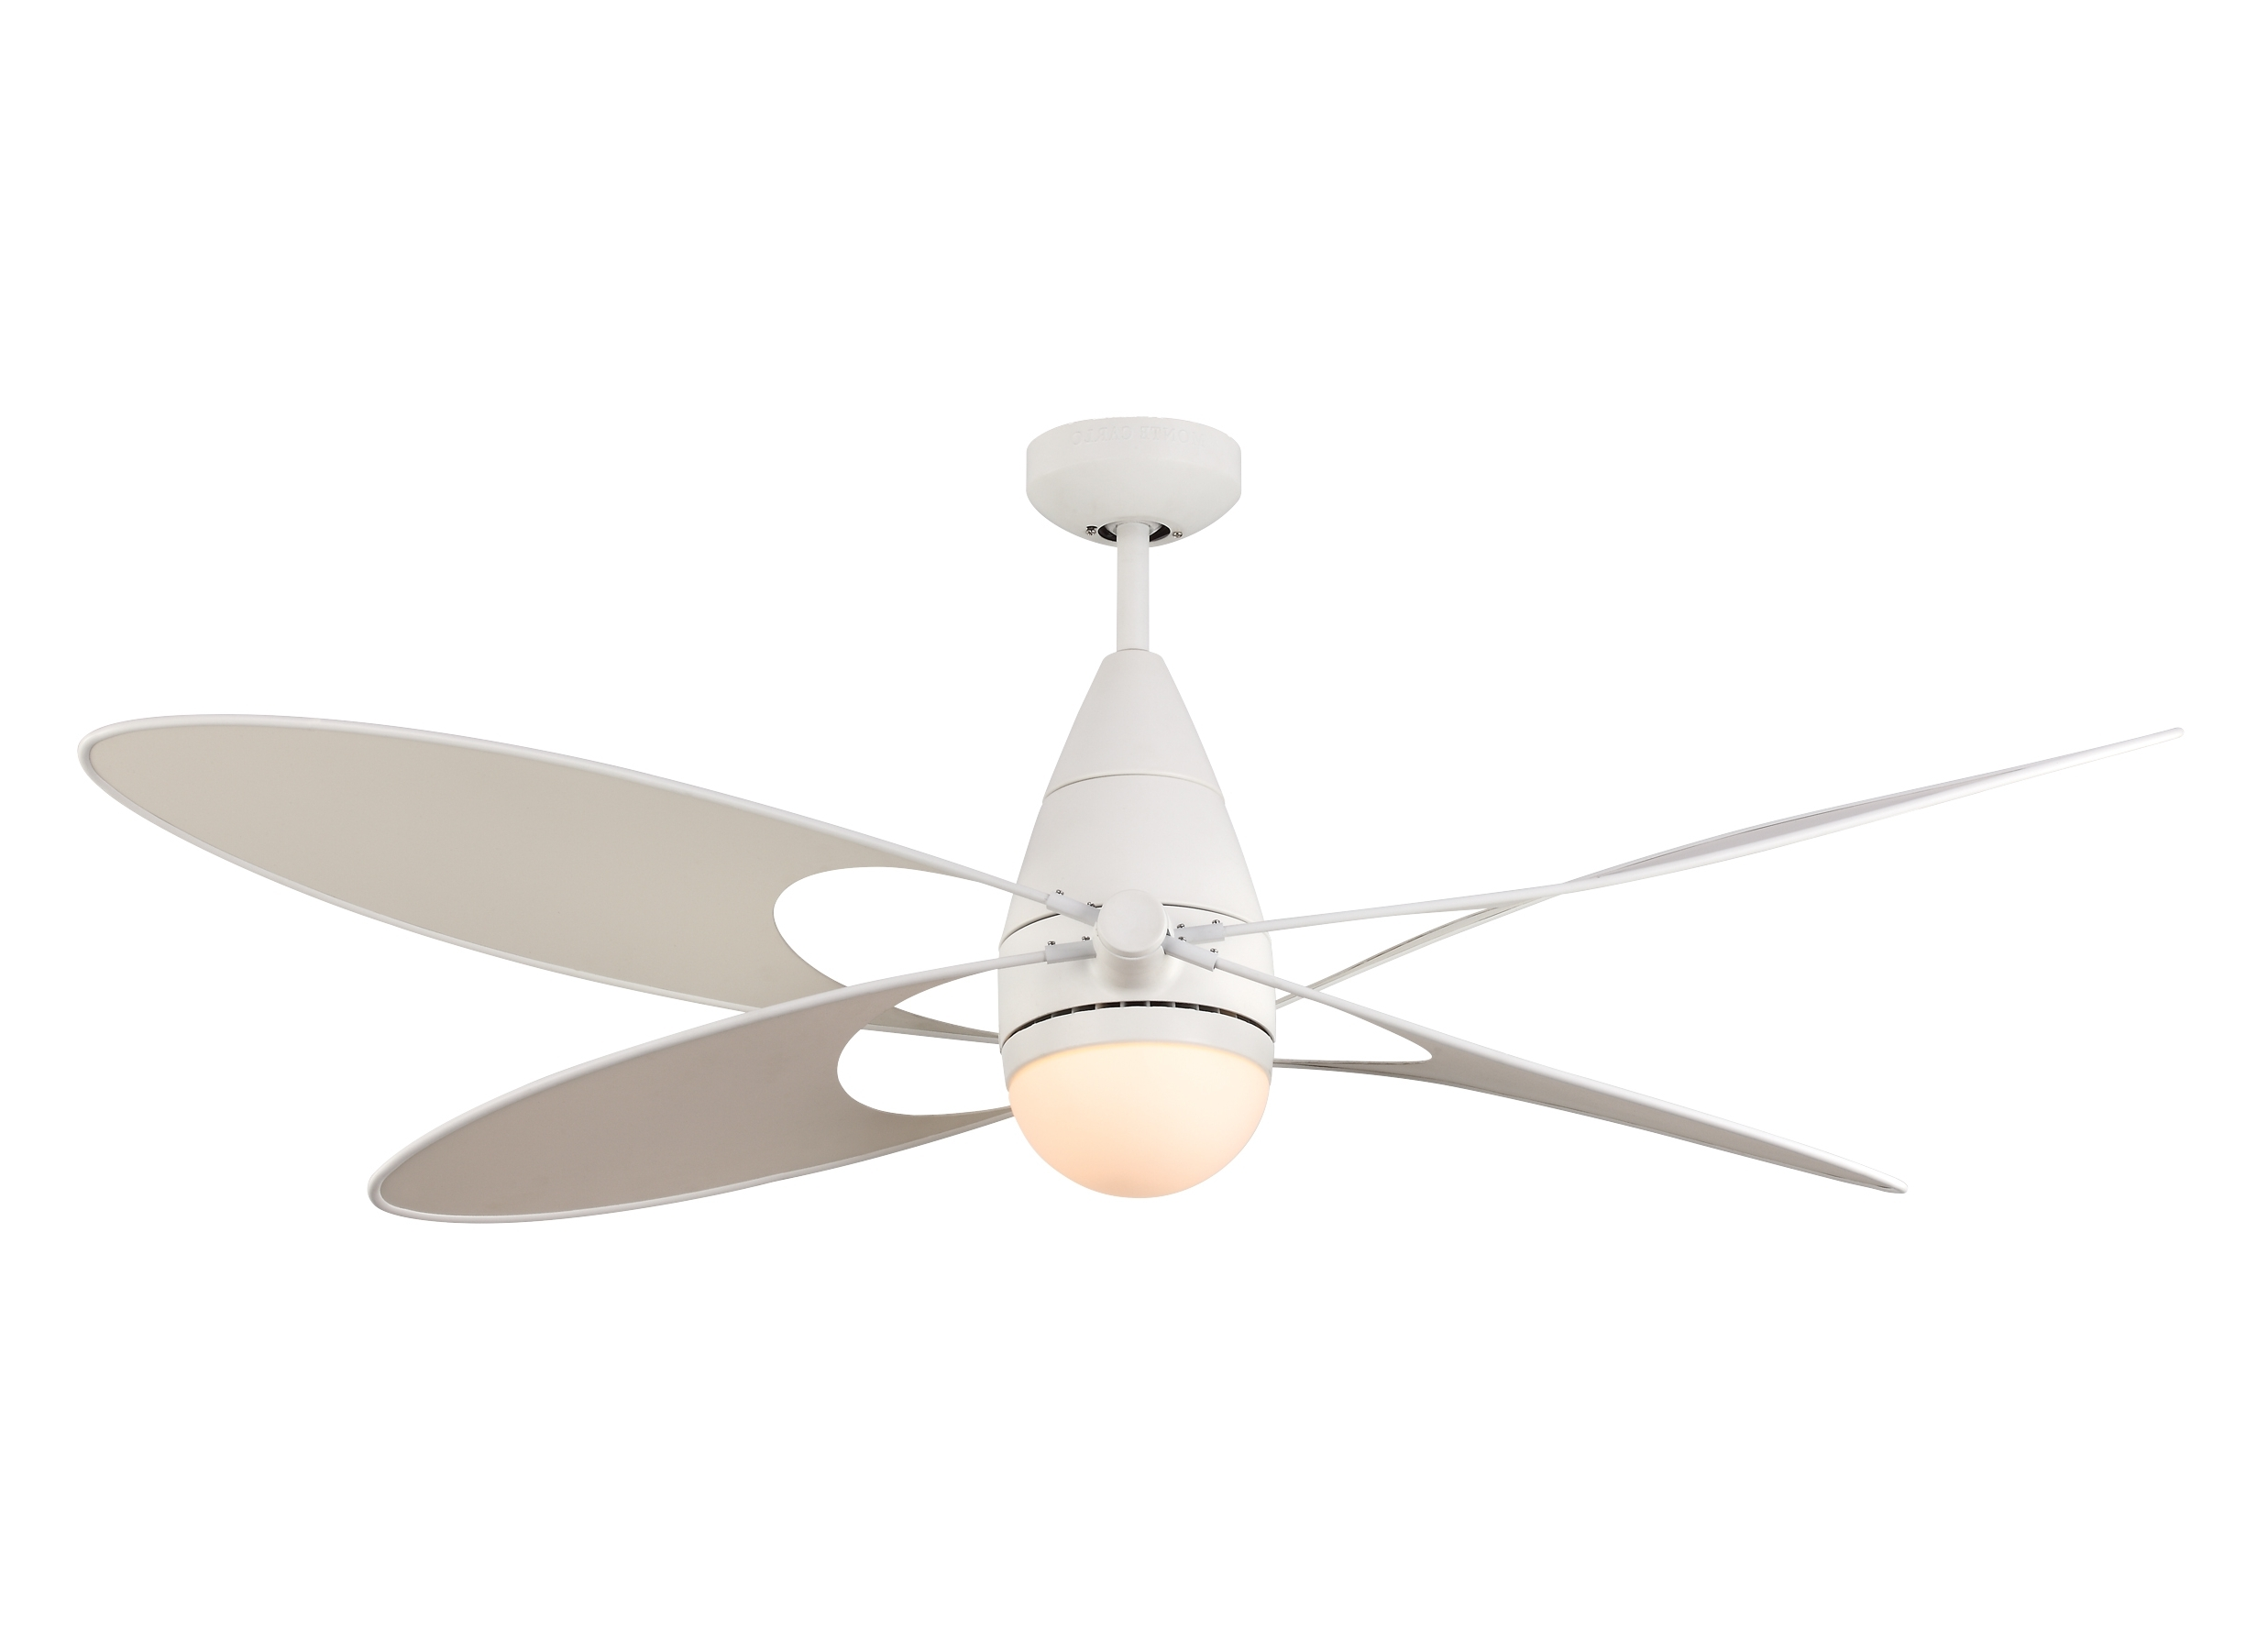 Outdoor Ceiling Fans At Menards Pertaining To Most Recently Released Lamps: Exciting Menards Ceiling Fans For Best Ceiling Fan (View 19 of 20)